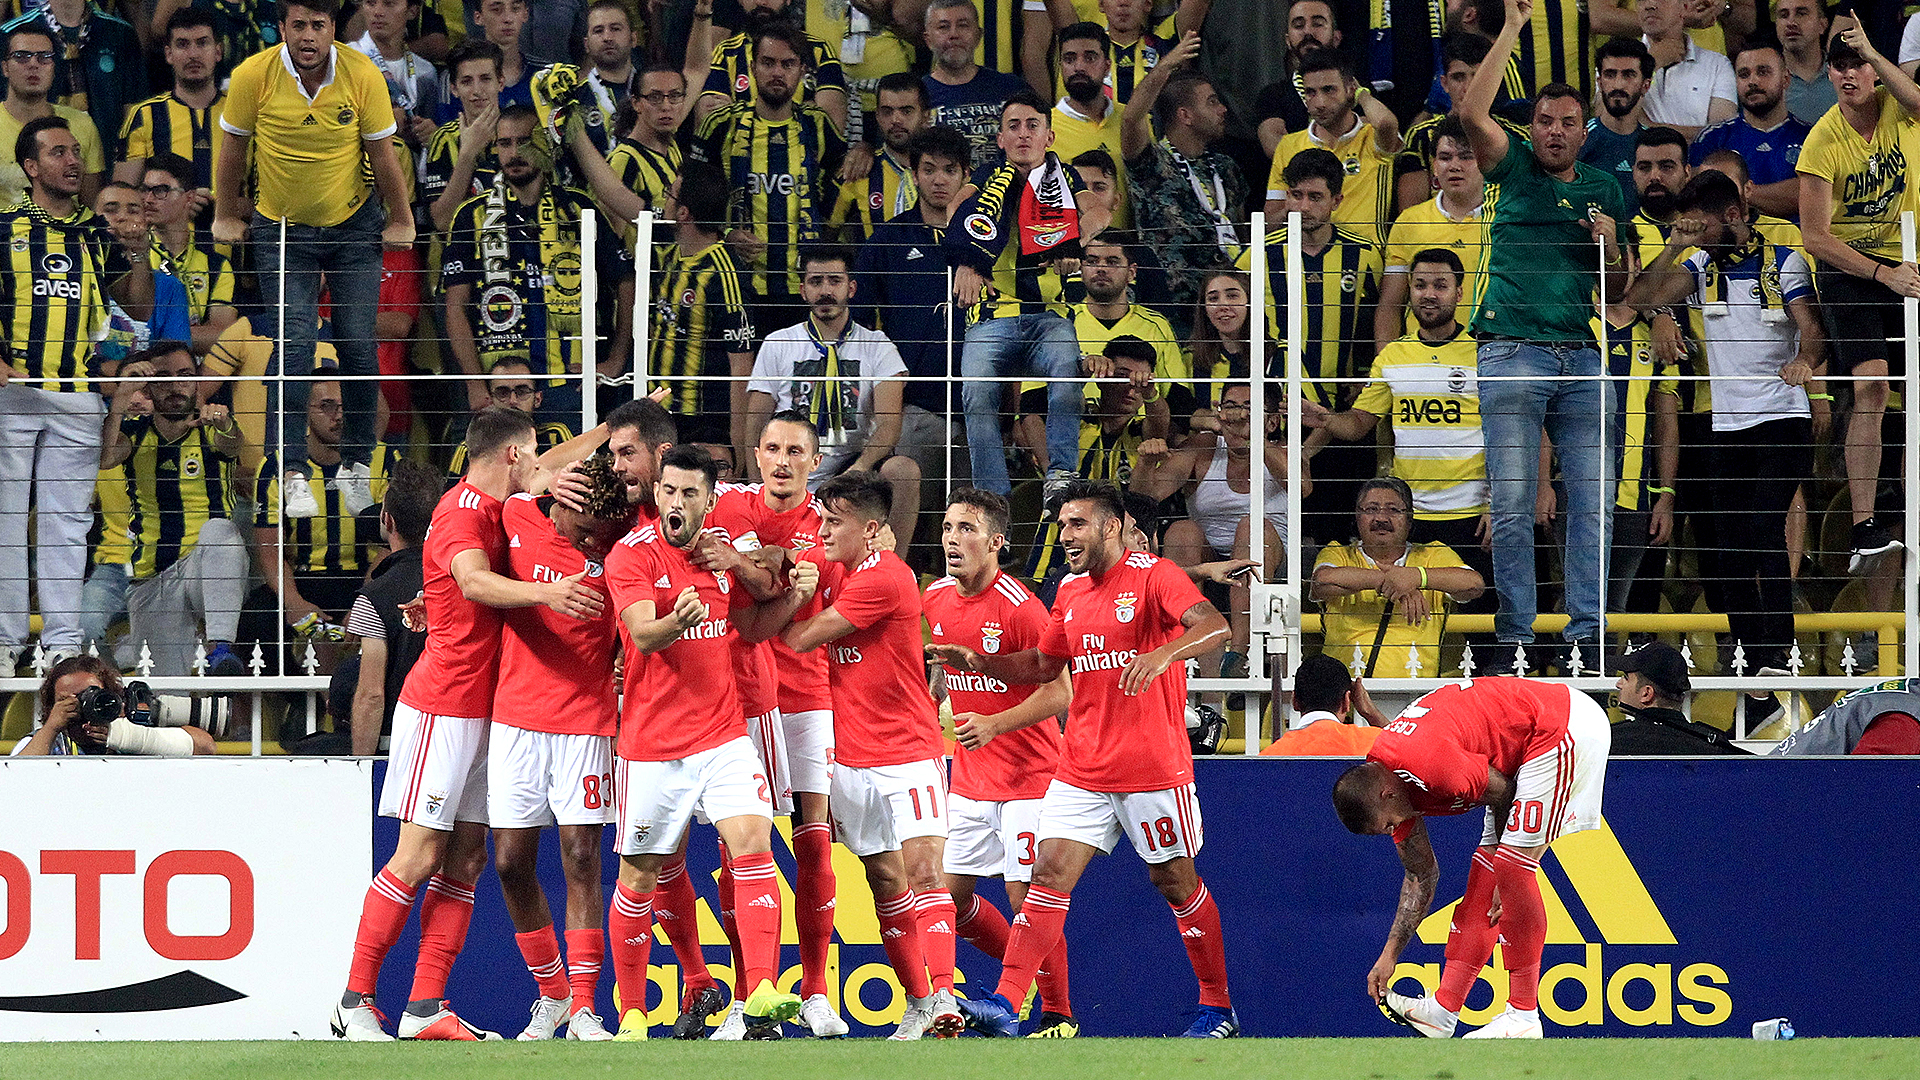 Benfica goal celebration Fenerbahce 08142018